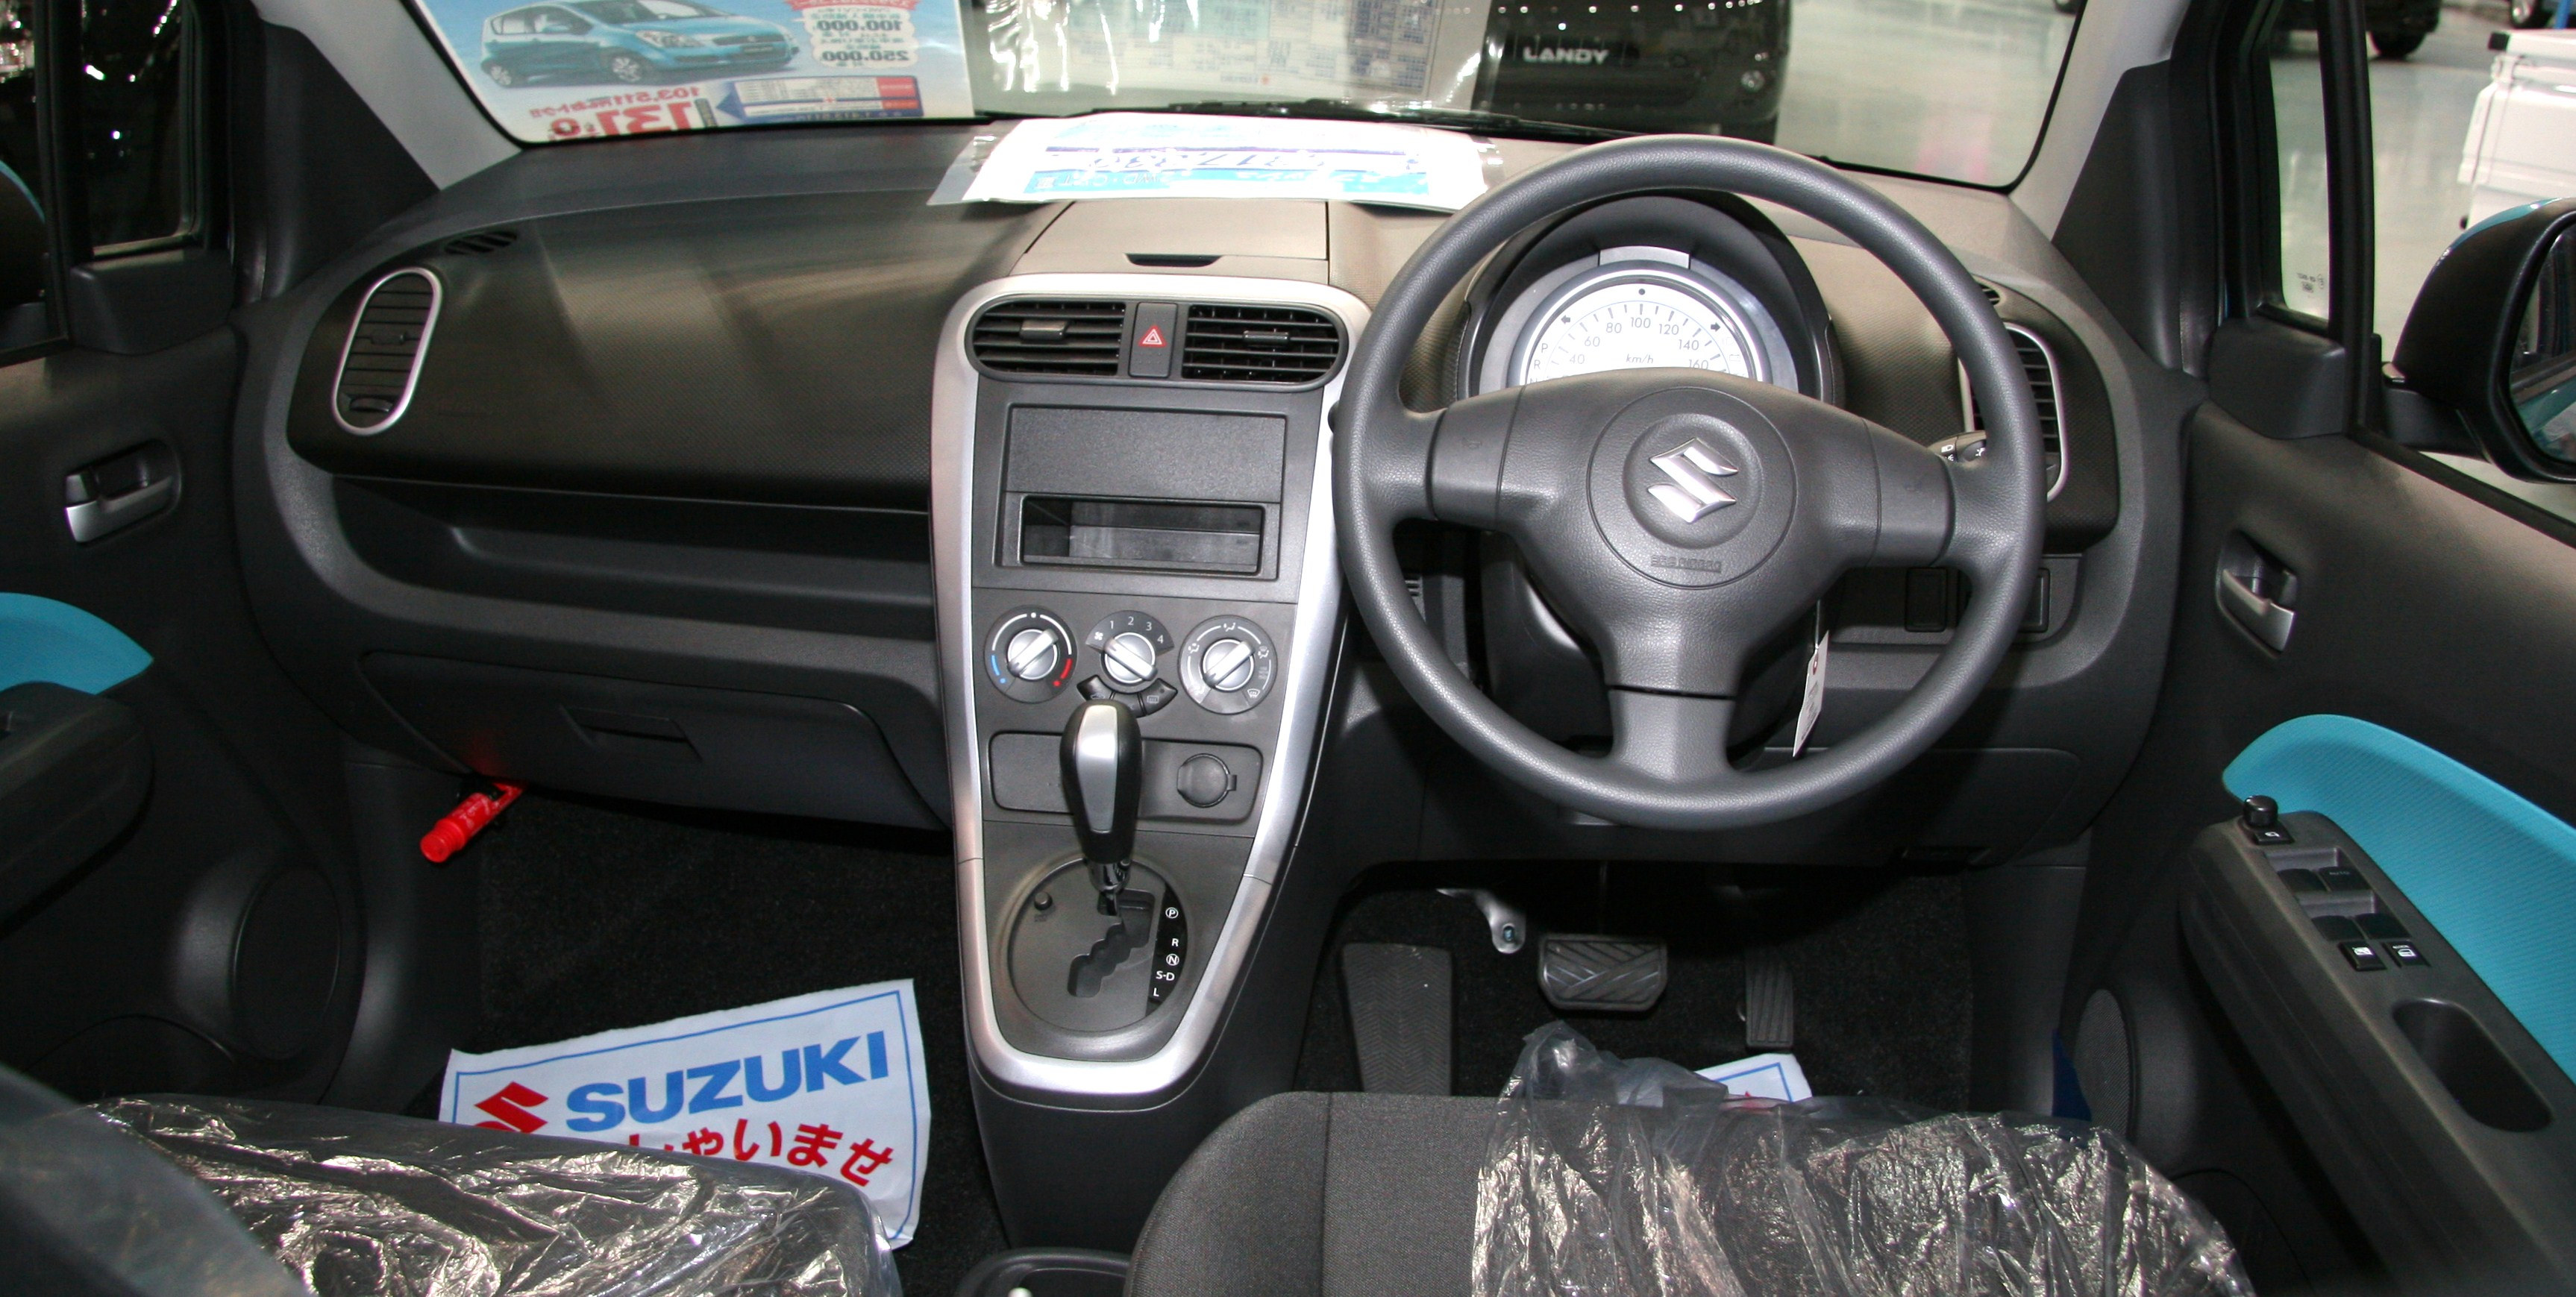 Swift 2016 Price In Pakistan >> File:2010 Suzuki Splash interior.jpg - Wikimedia Commons